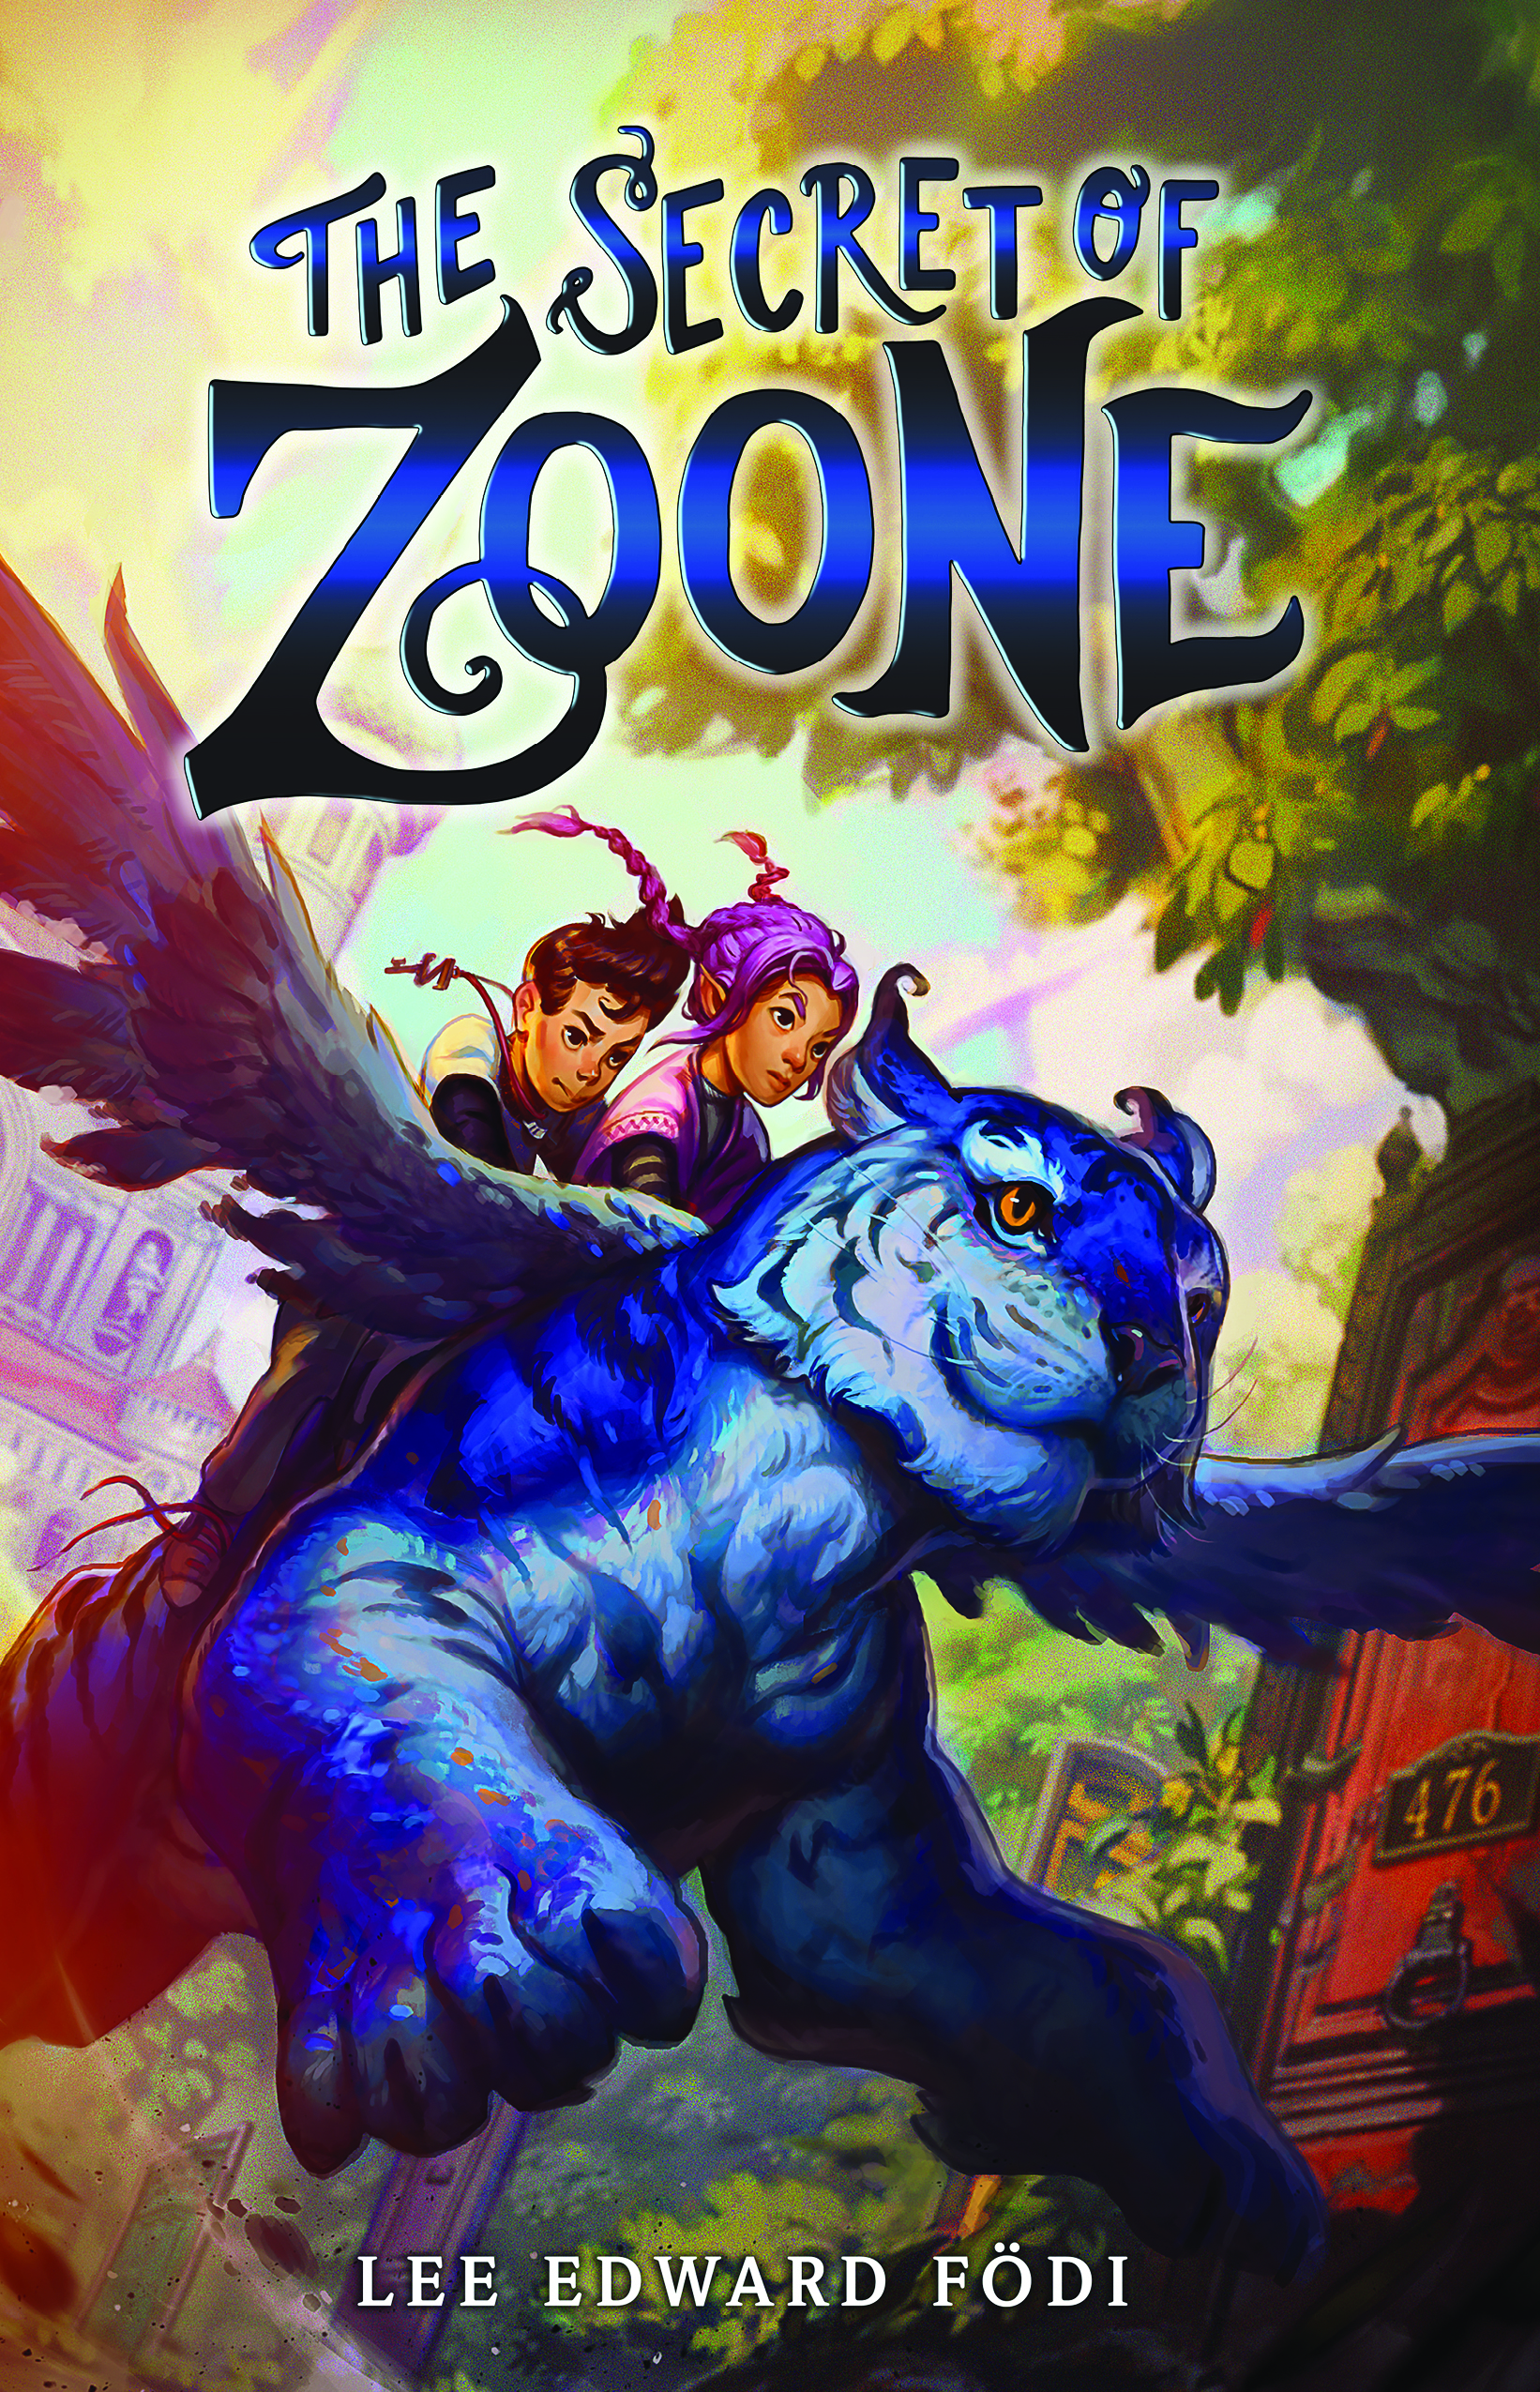 Fodi, Lee - The Secret of Zoone - Book 1 - FINAL COVER - June 6 2018.jpg